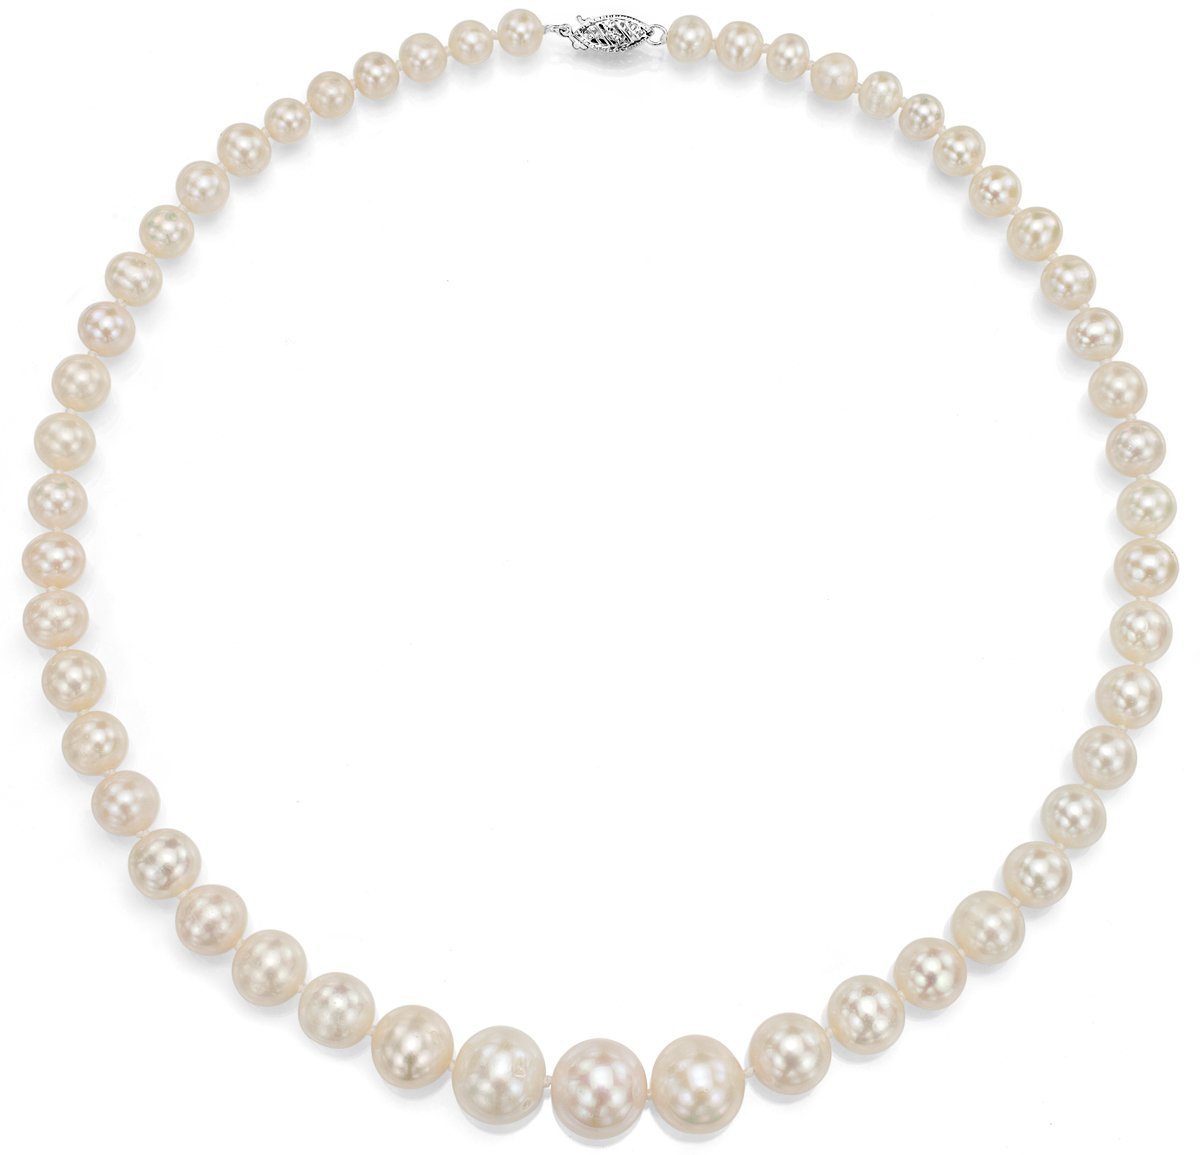 14K White Gold White Cultured Freshwater Pearl Necklace Bridal Jewelry Graduated 6-11mm 18 inch